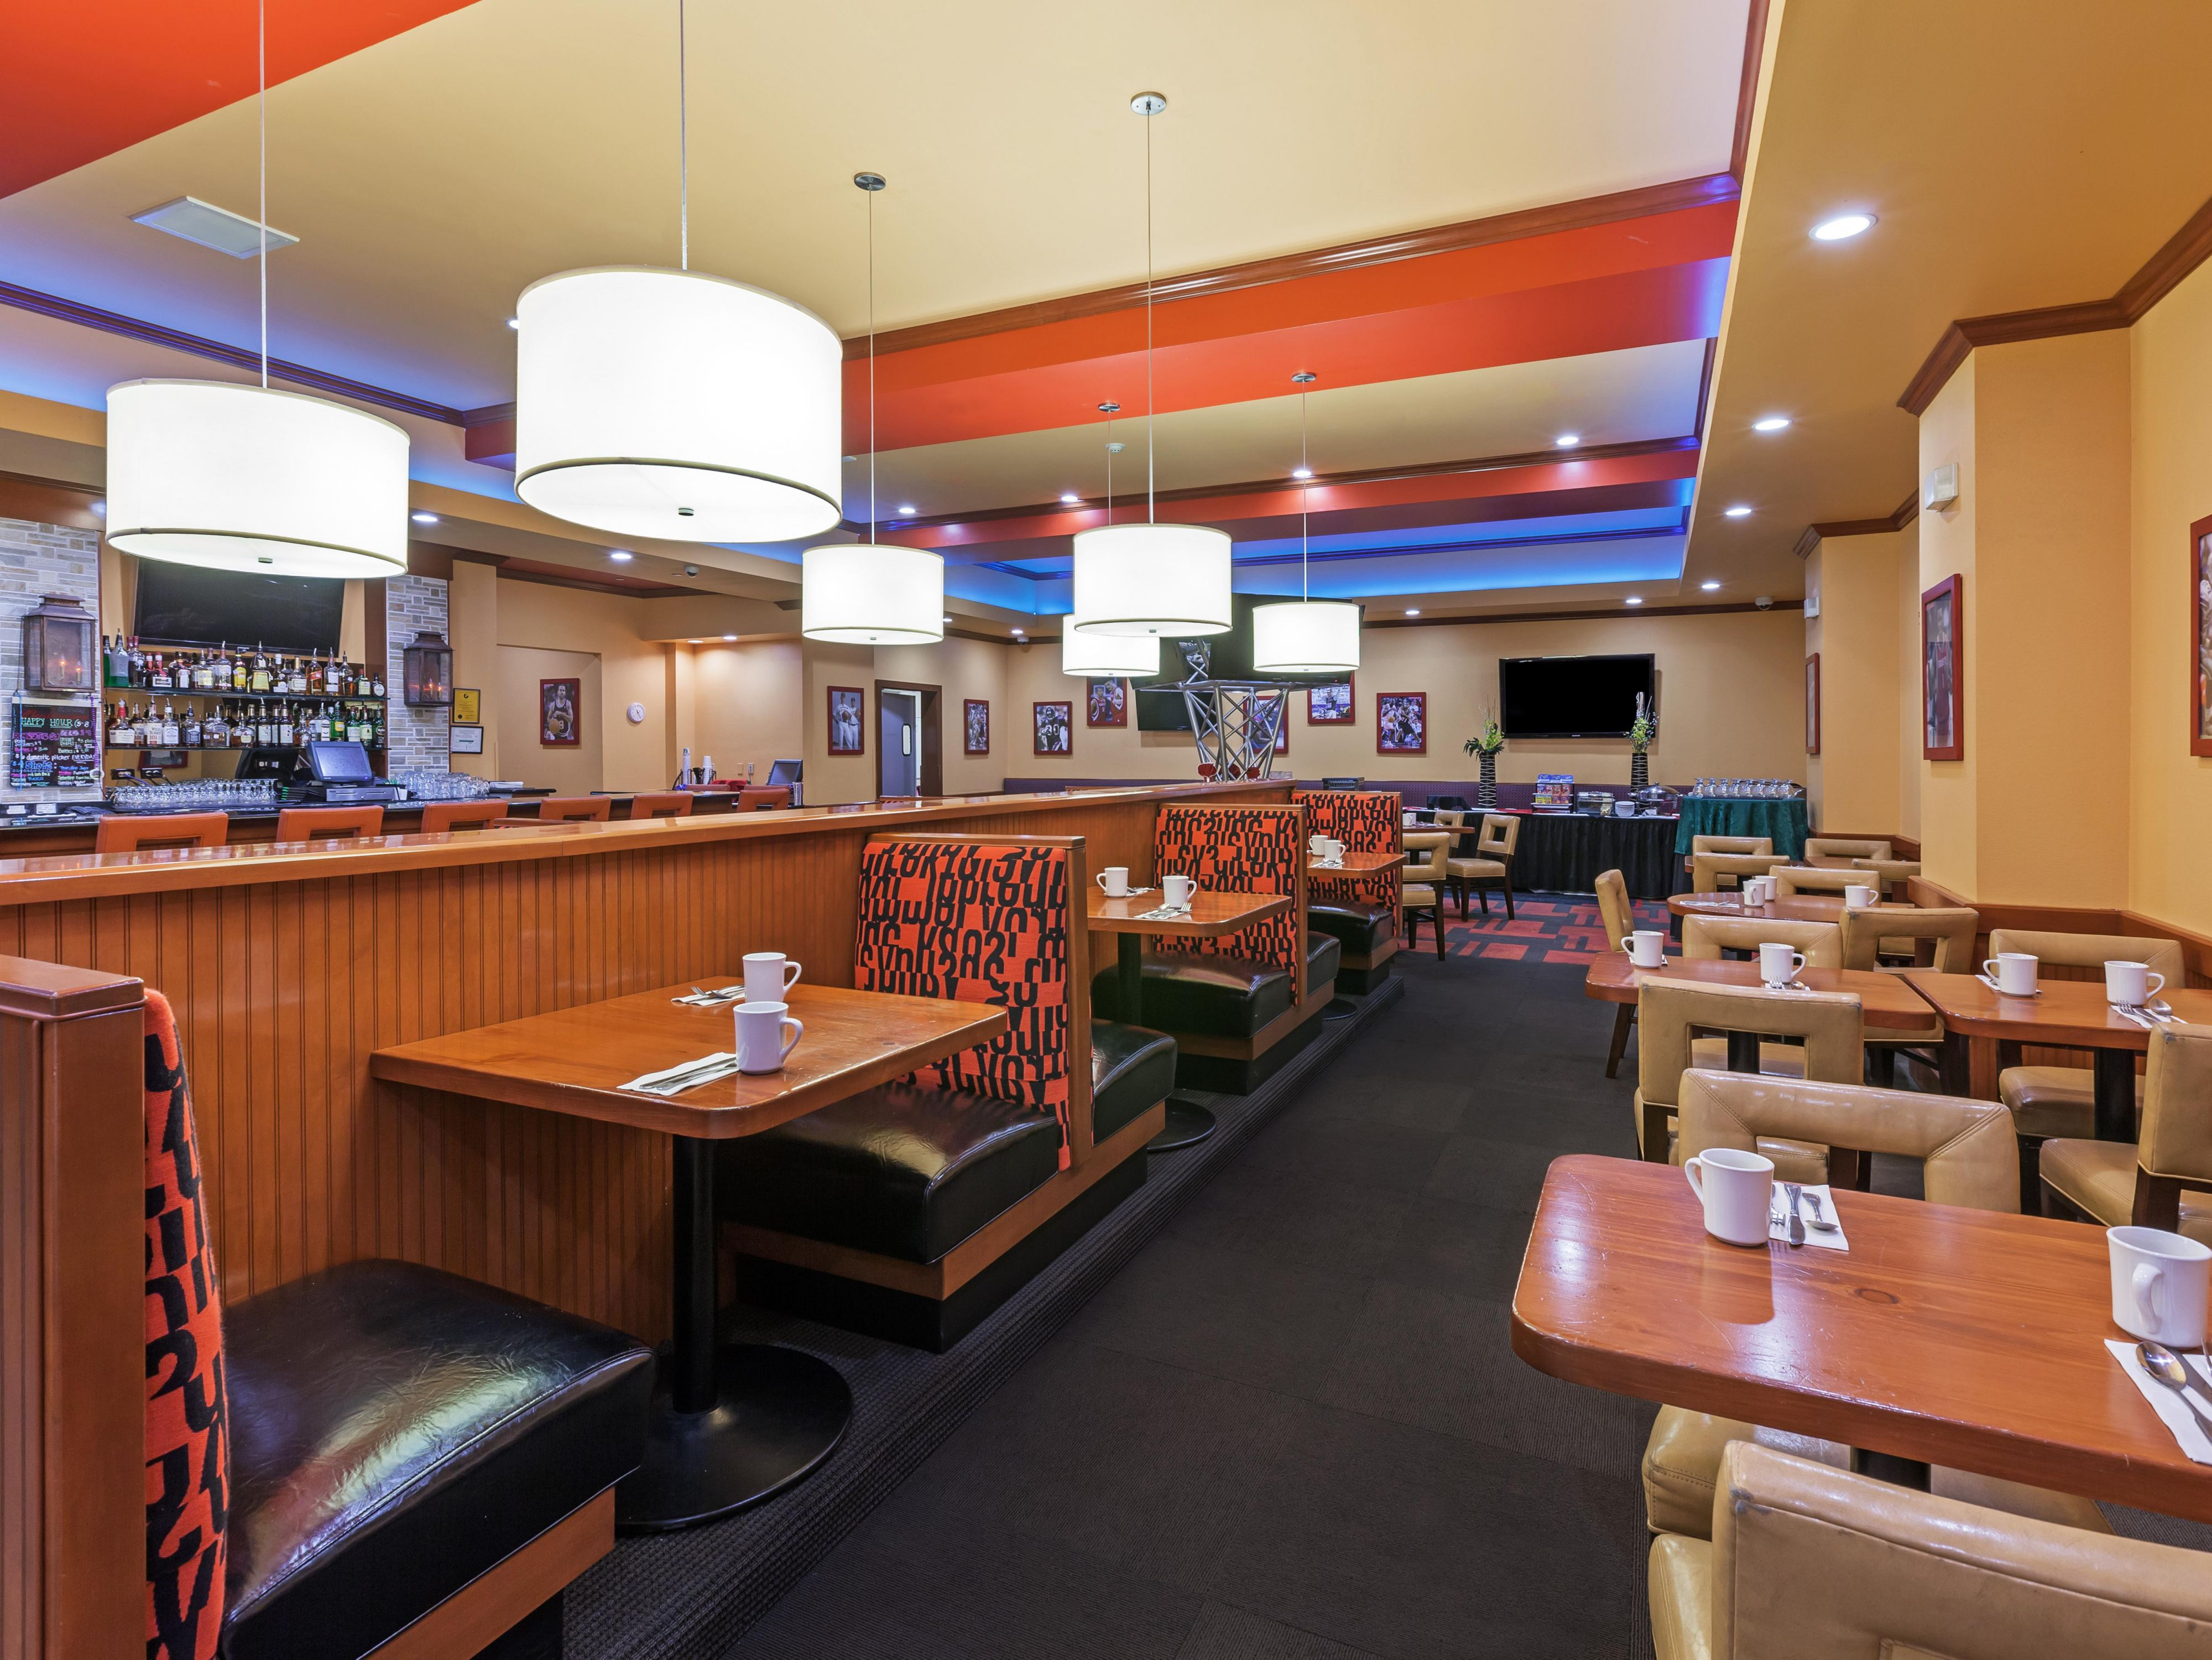 Enjoy dinner at the Sporting News Grill located inside our hotel